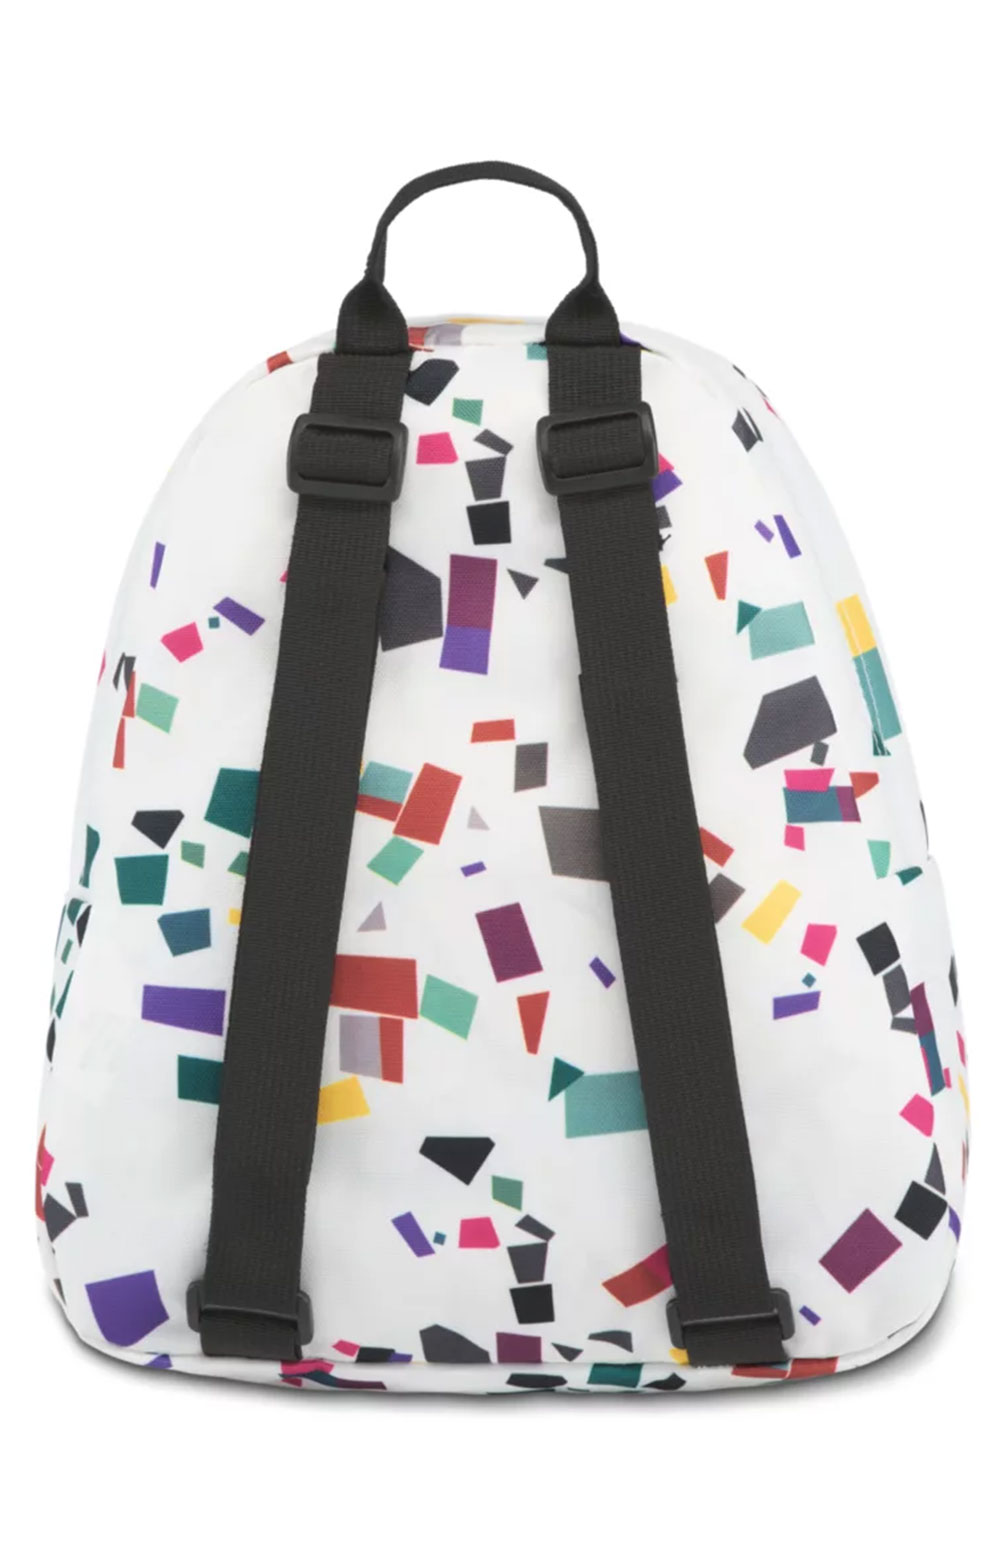 Half Pint Mini Backpack - Holiday Geo Party 2